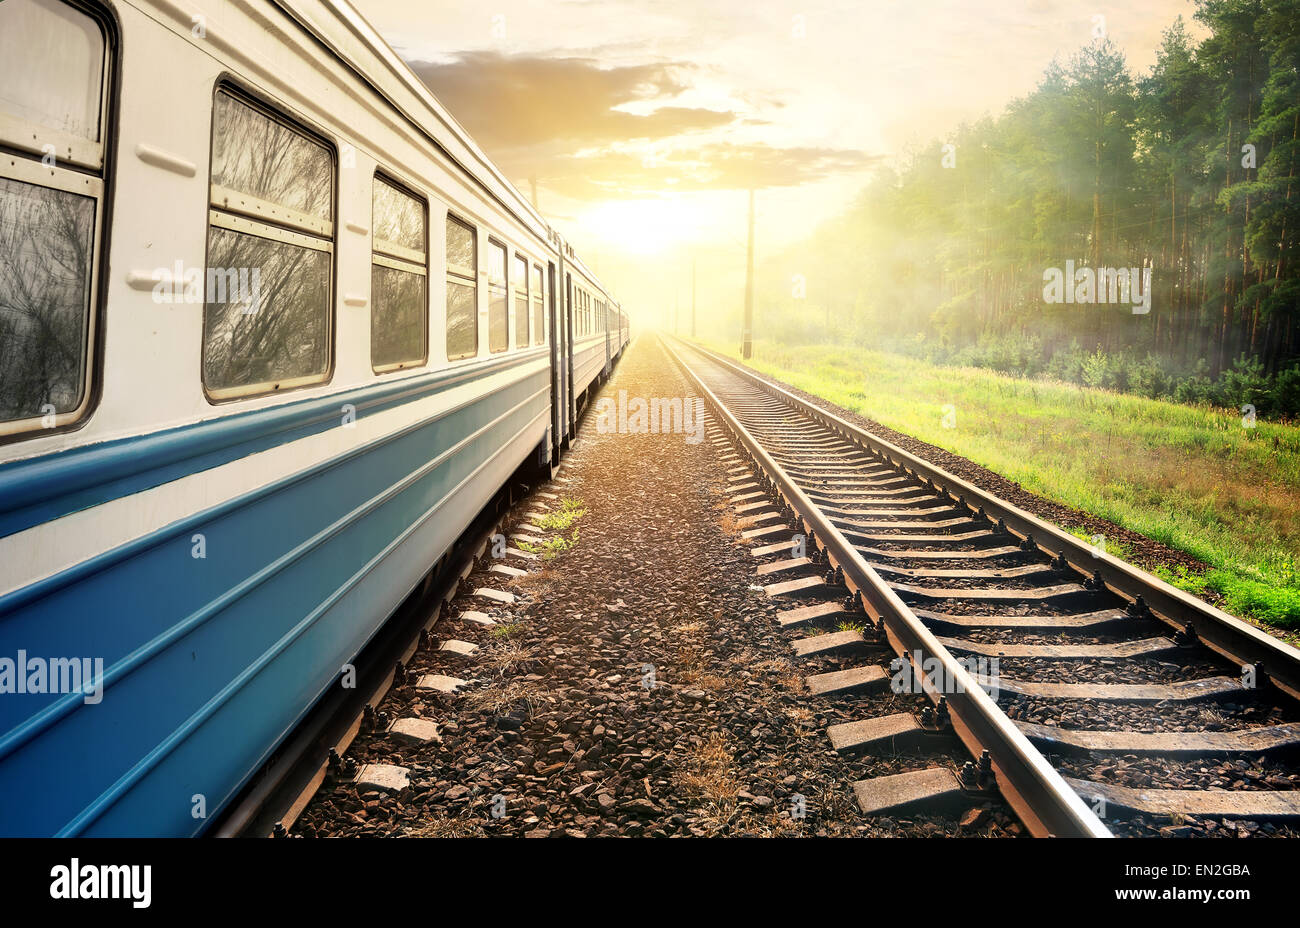 Train moving through the pine forest at sunset Stock Photo